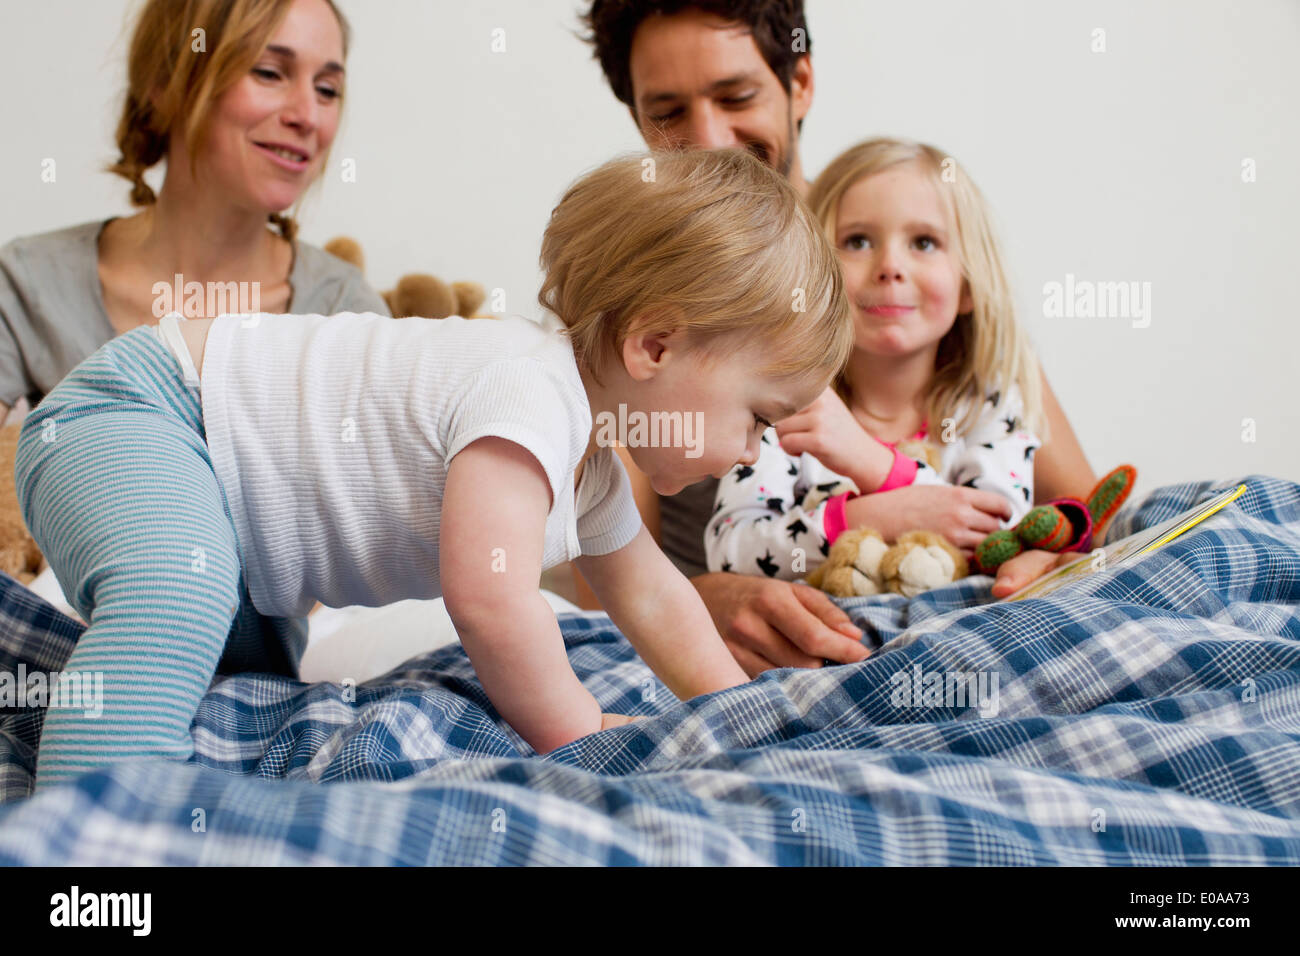 One year old baby girl crawling on parents bed - Stock Image